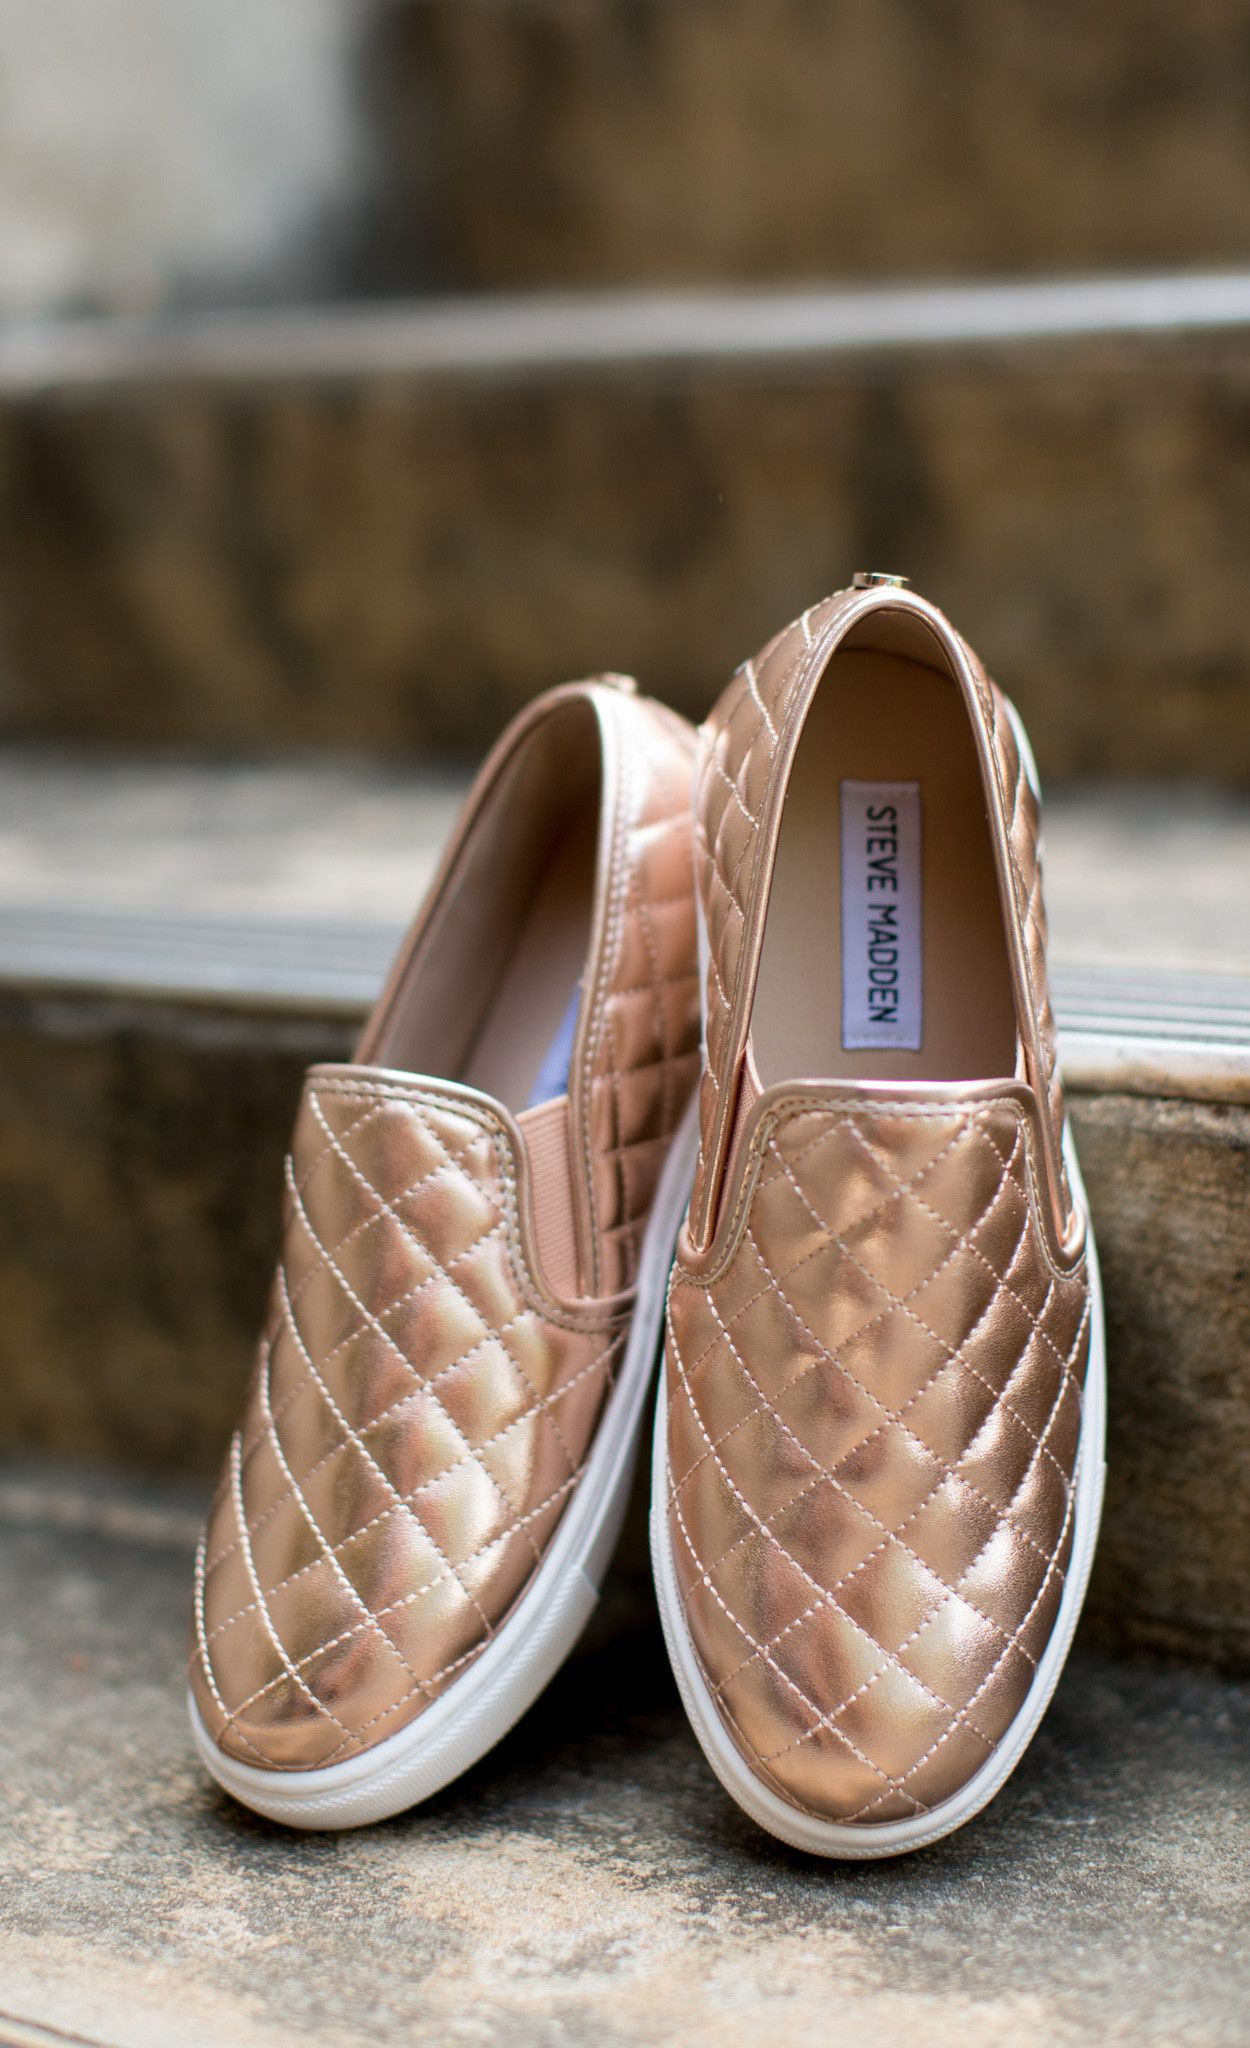 Steve Madden Pastel Rose Gold Espadrilles Casual Sneakers clearance in China cheap sale latest discount buy buy cheap deals GH9memw